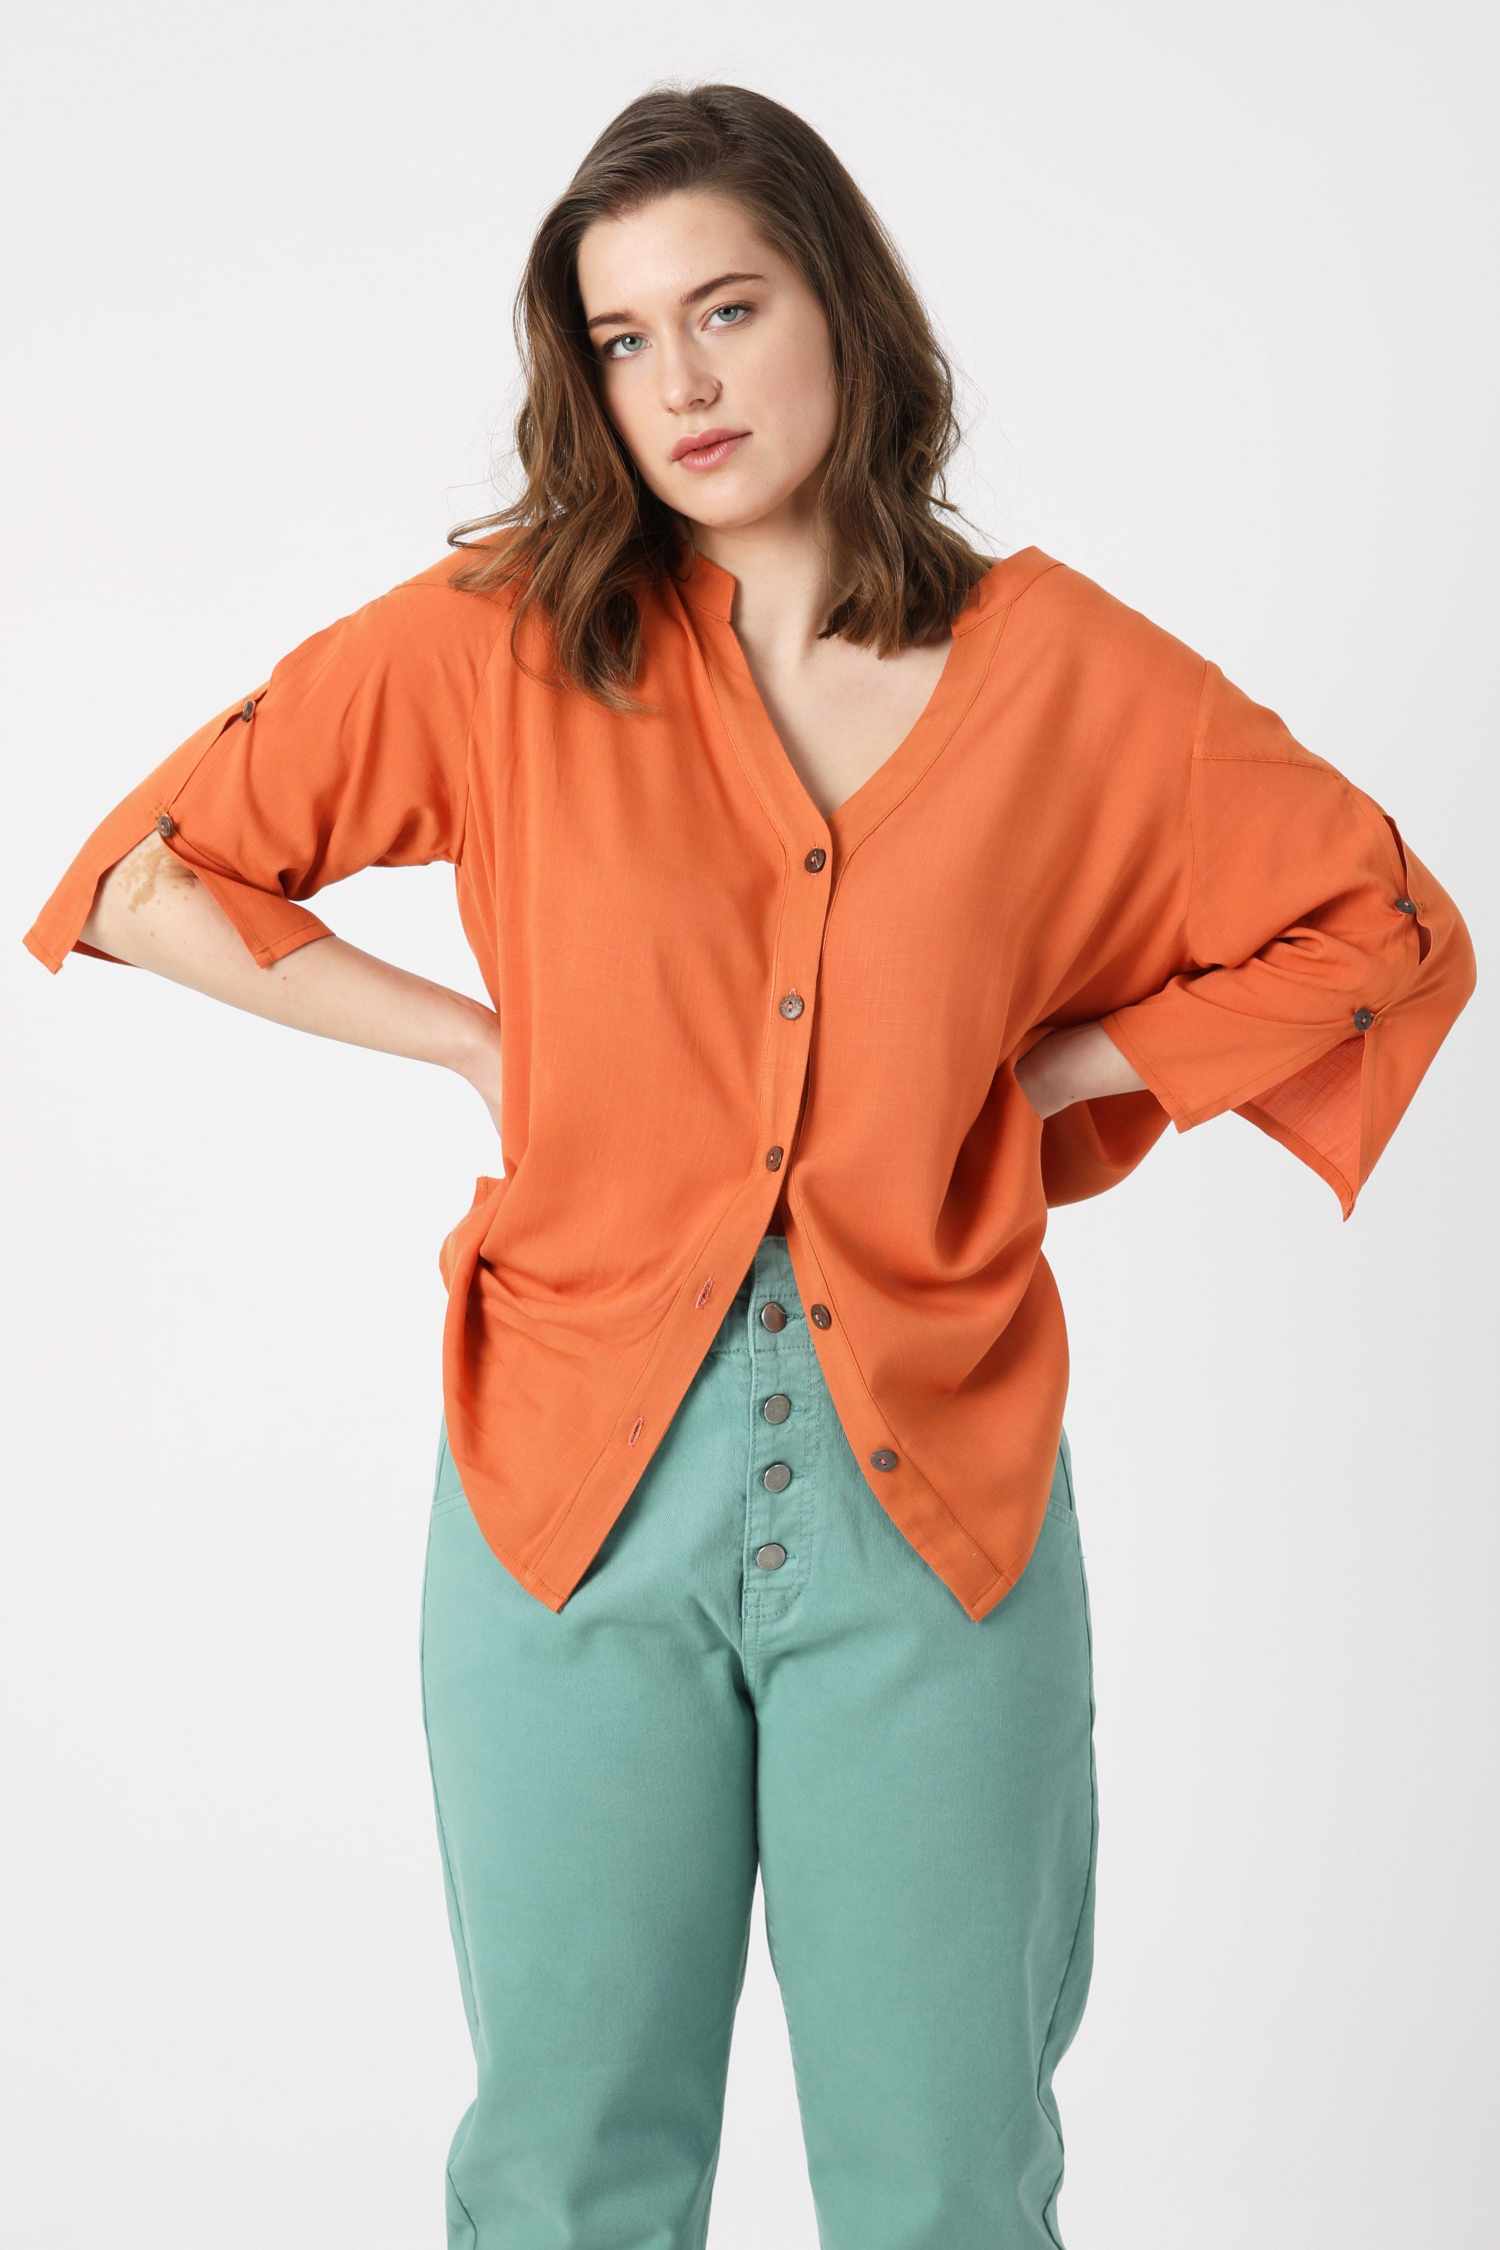 Plain blouse with buttoned cutout at the back.